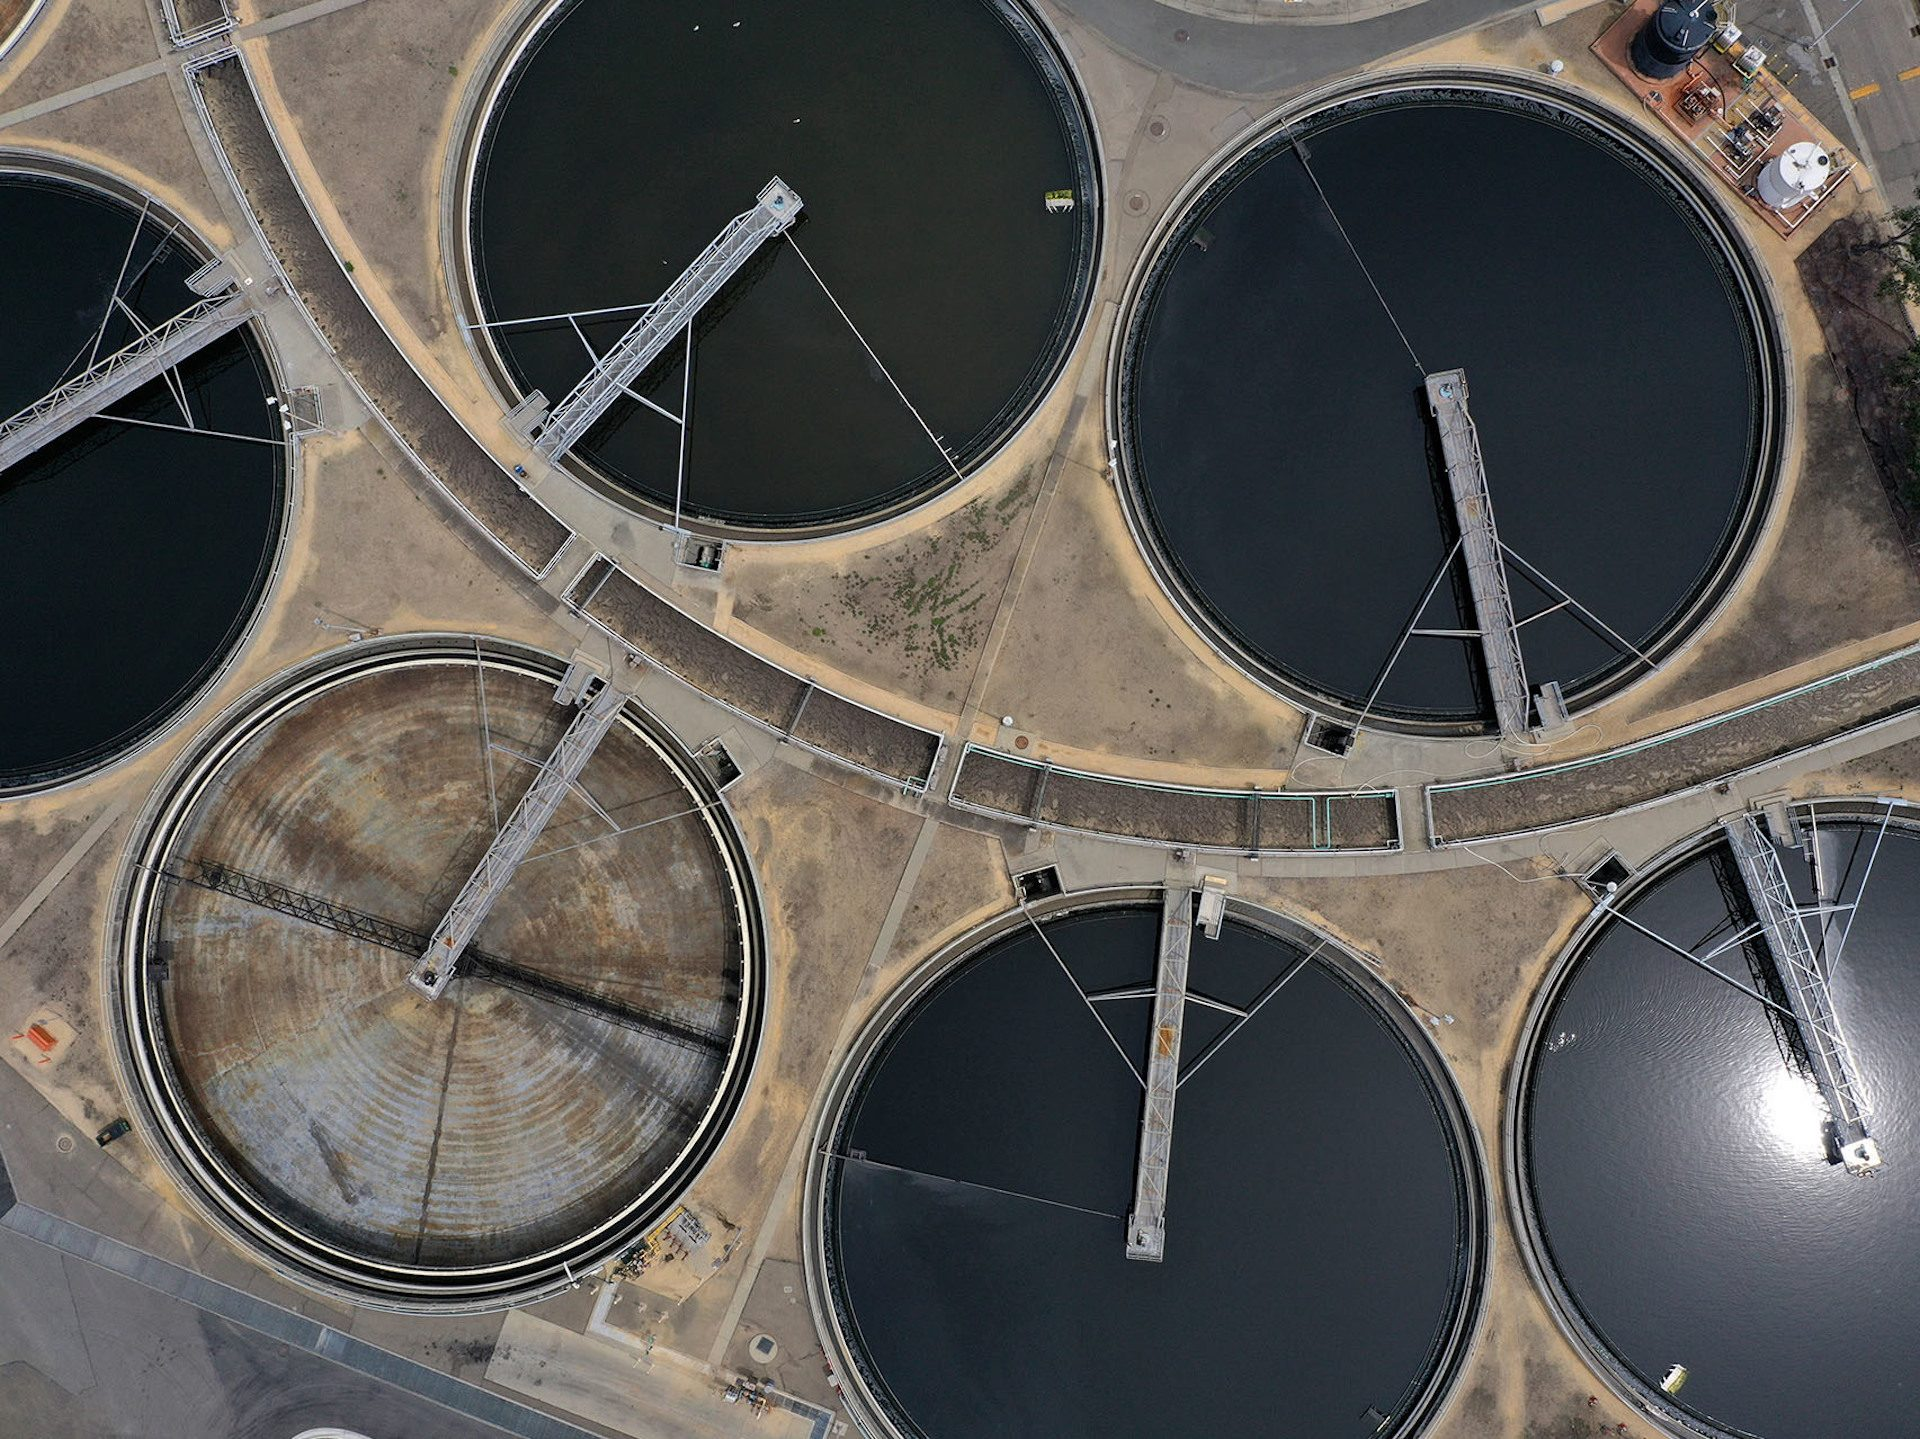 The East Bay Municipal Utility District wastewater treatment plant in Oakland, Calif. Stanford University researchers are testing sewage in hopes of tracking the emergence and spread of COVID-19 outbreaks.